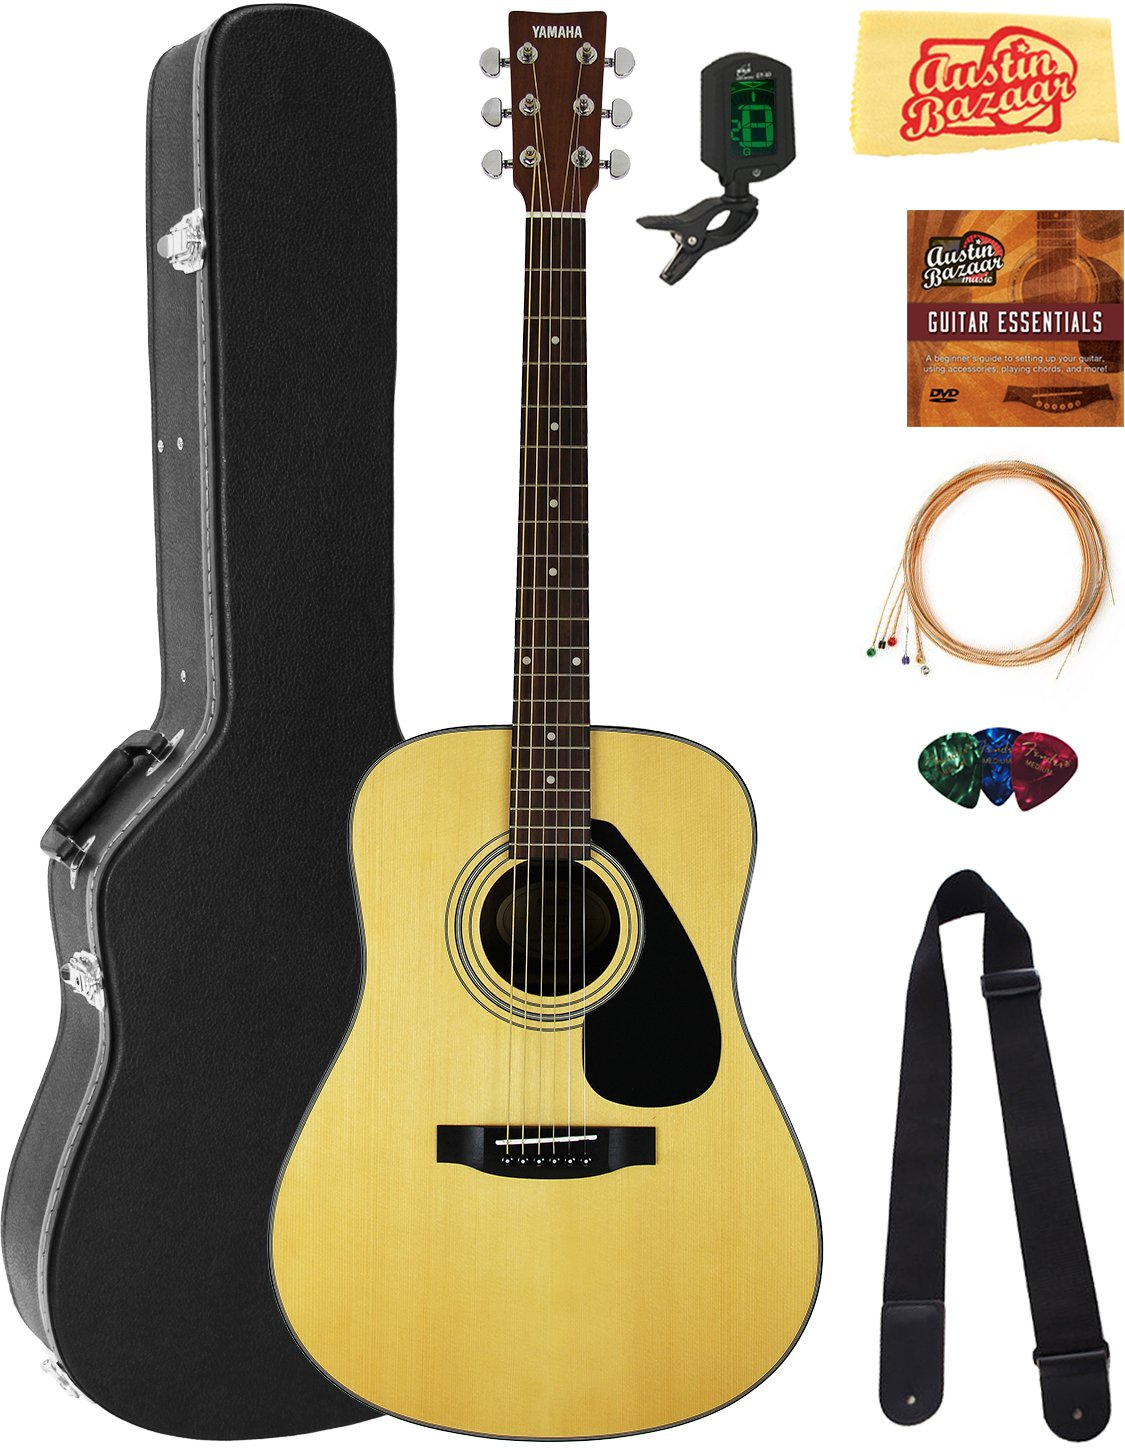 Yamaha F325D Dreadnought Acoustic Guitar Bundle with Hard Case, Tuner, Strings, Strap, Picks, Austin Bazaar Instructional DVD, and Polishing Cloth by YAMAHA